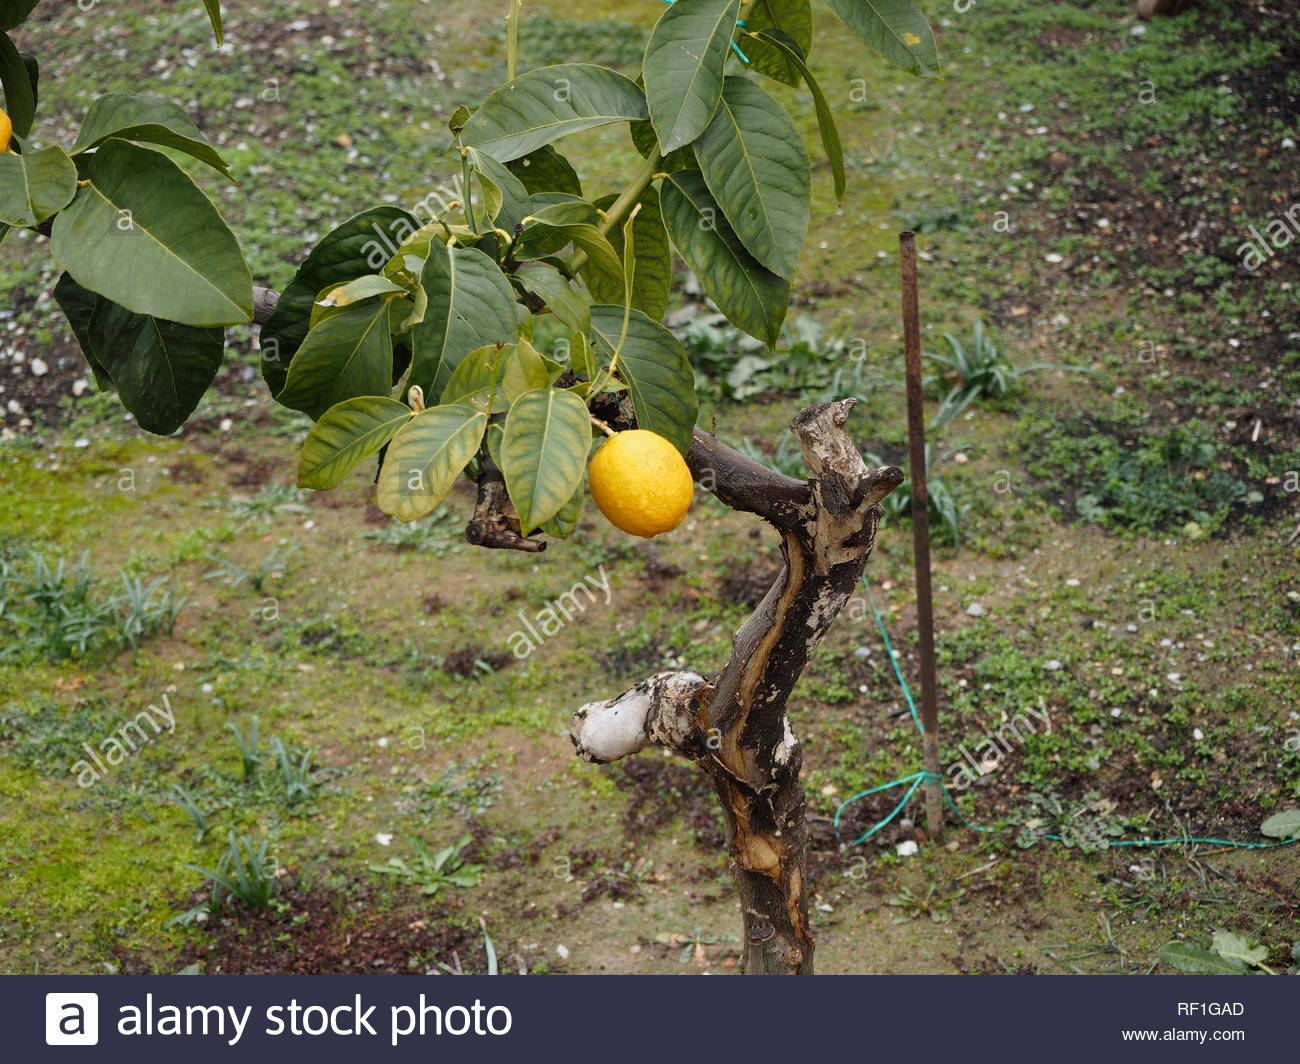 Lemon on a small pruned lemon tree - Stock Image